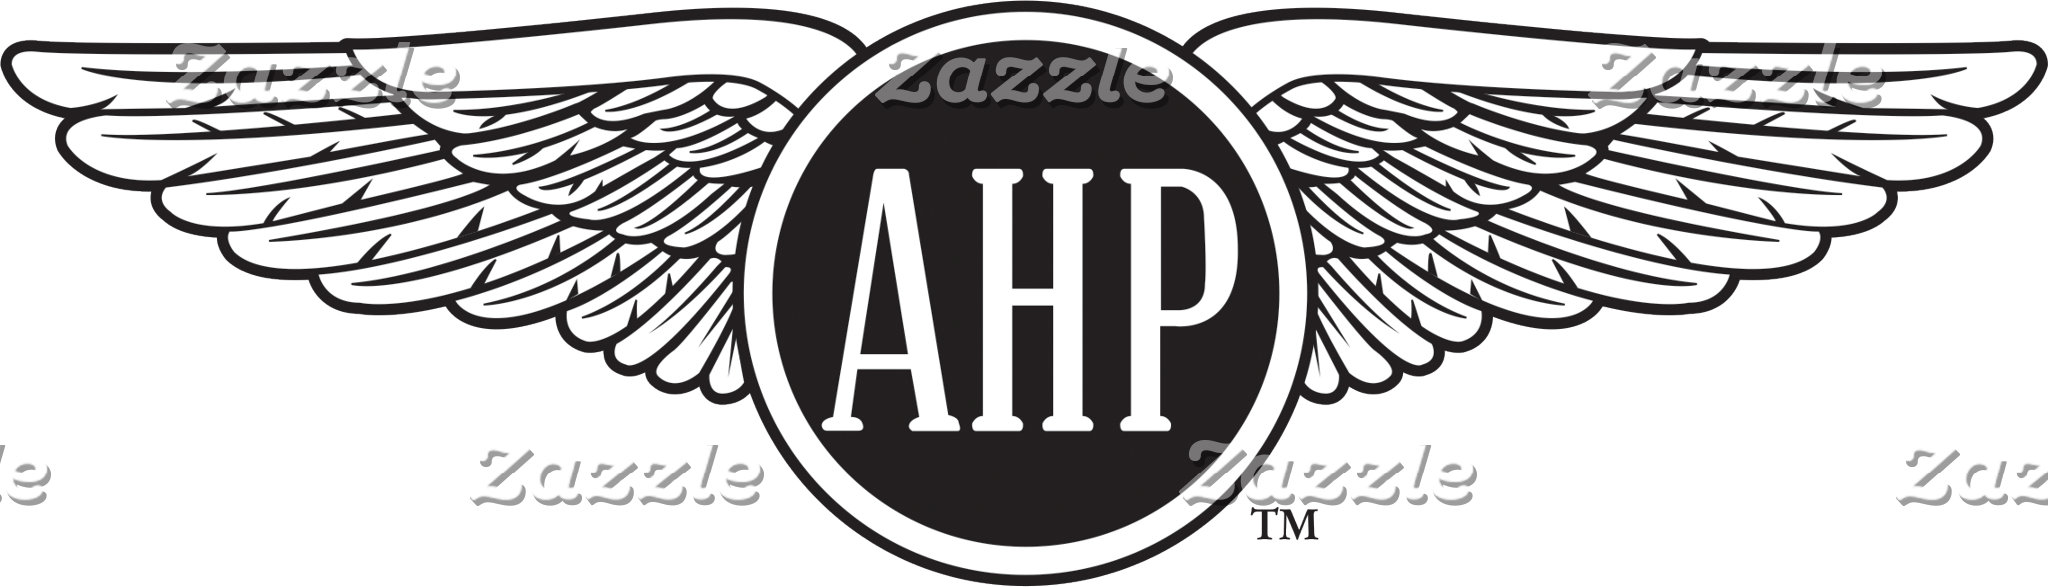 AHP Wings - B&W